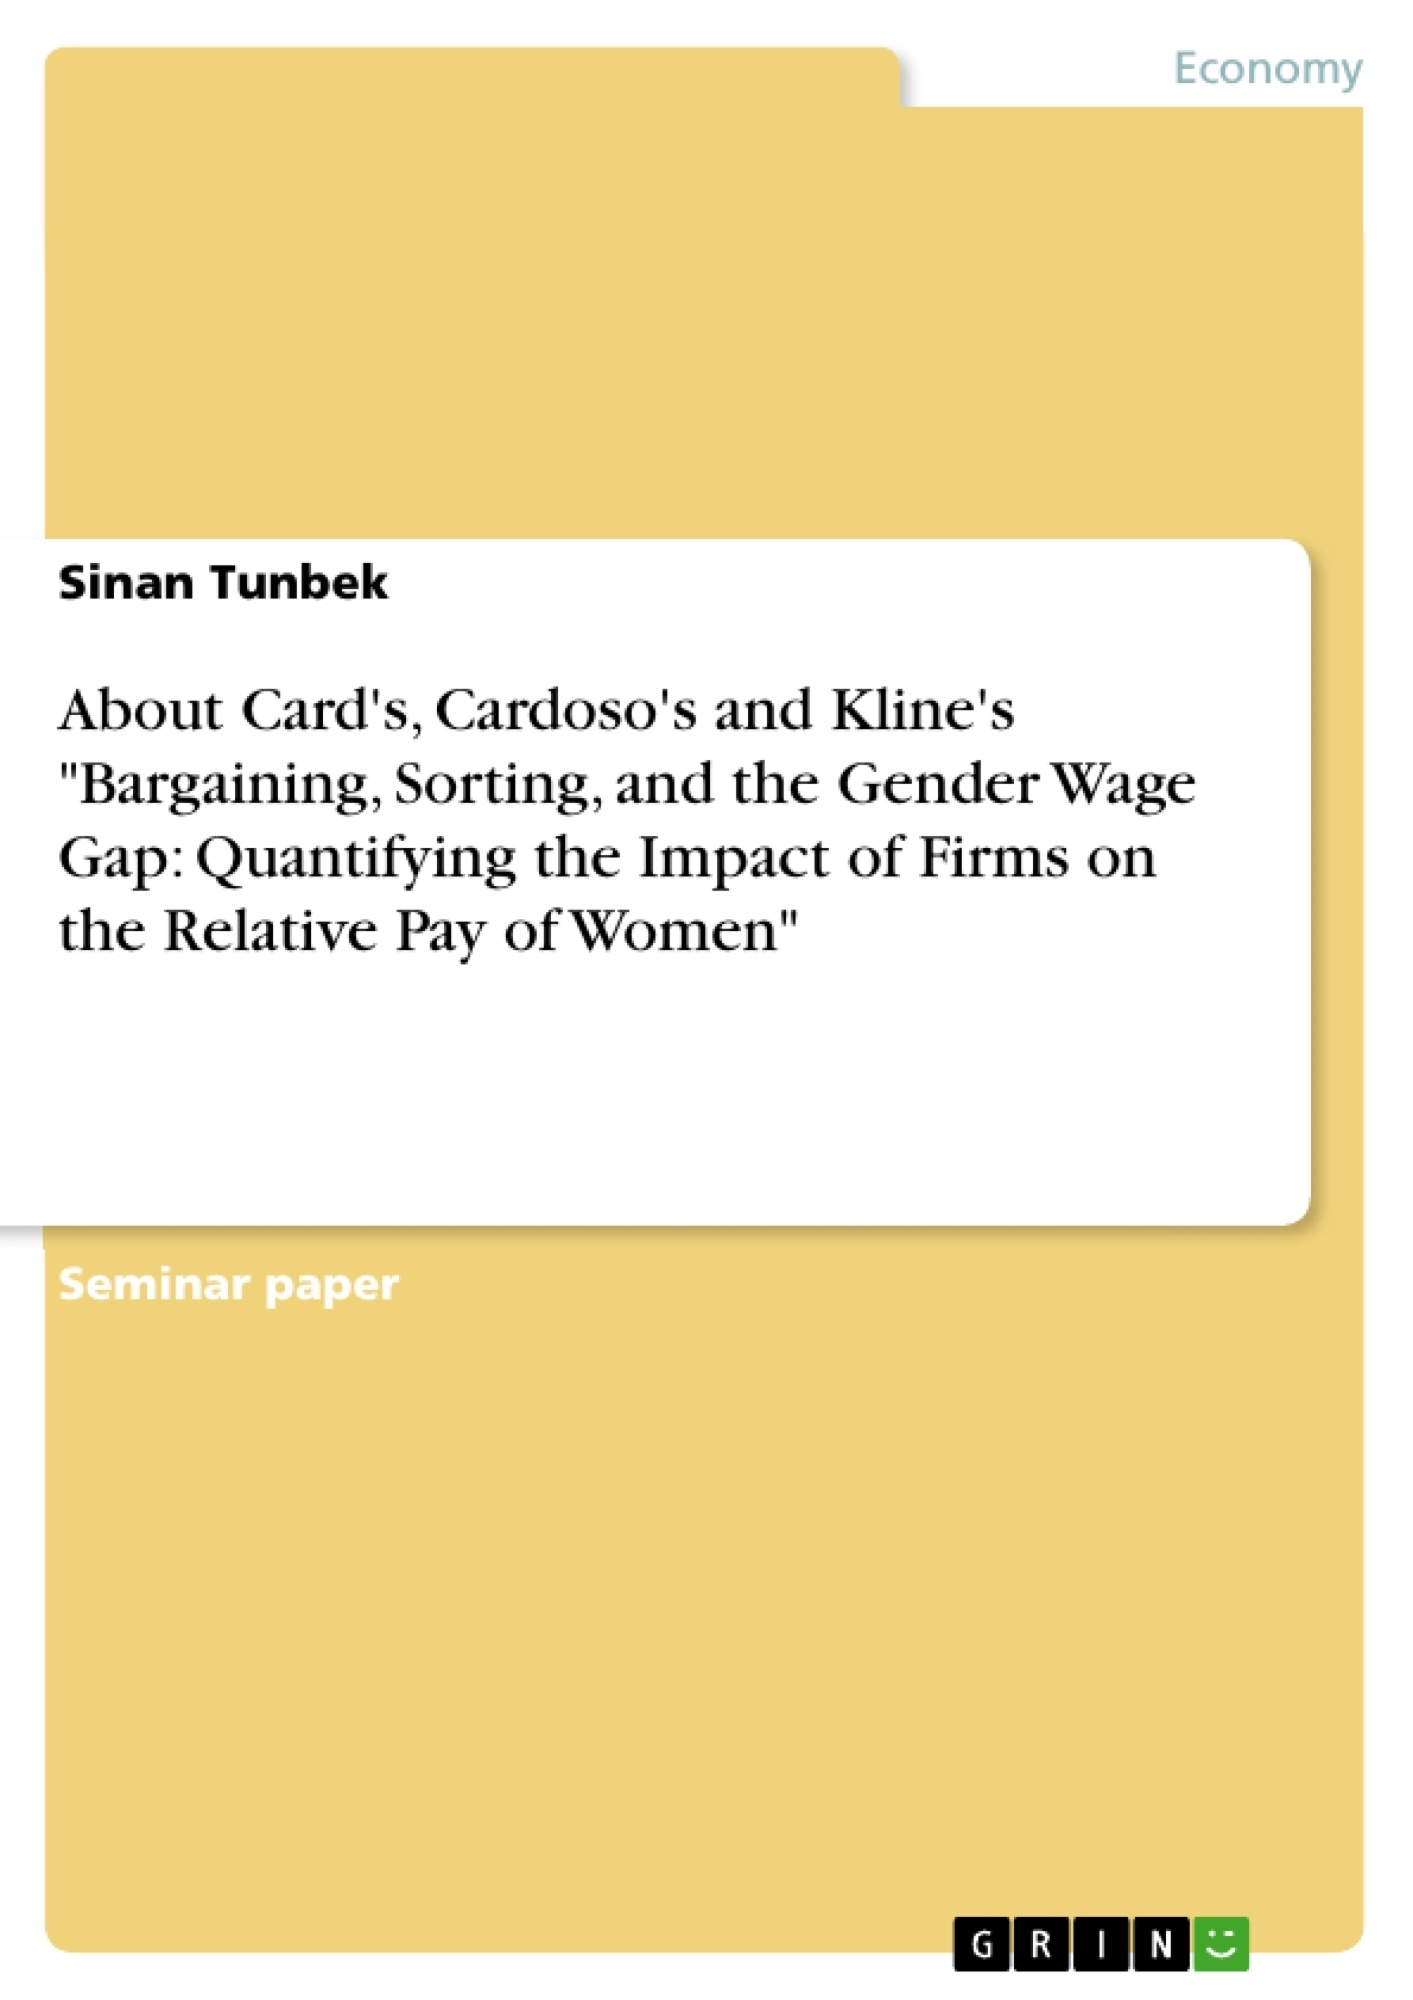 """Title: About Card's, Cardoso's and Kline's """"Bargaining, Sorting, and the Gender Wage Gap: Quantifying the Impact of Firms on the Relative Pay of Women"""""""